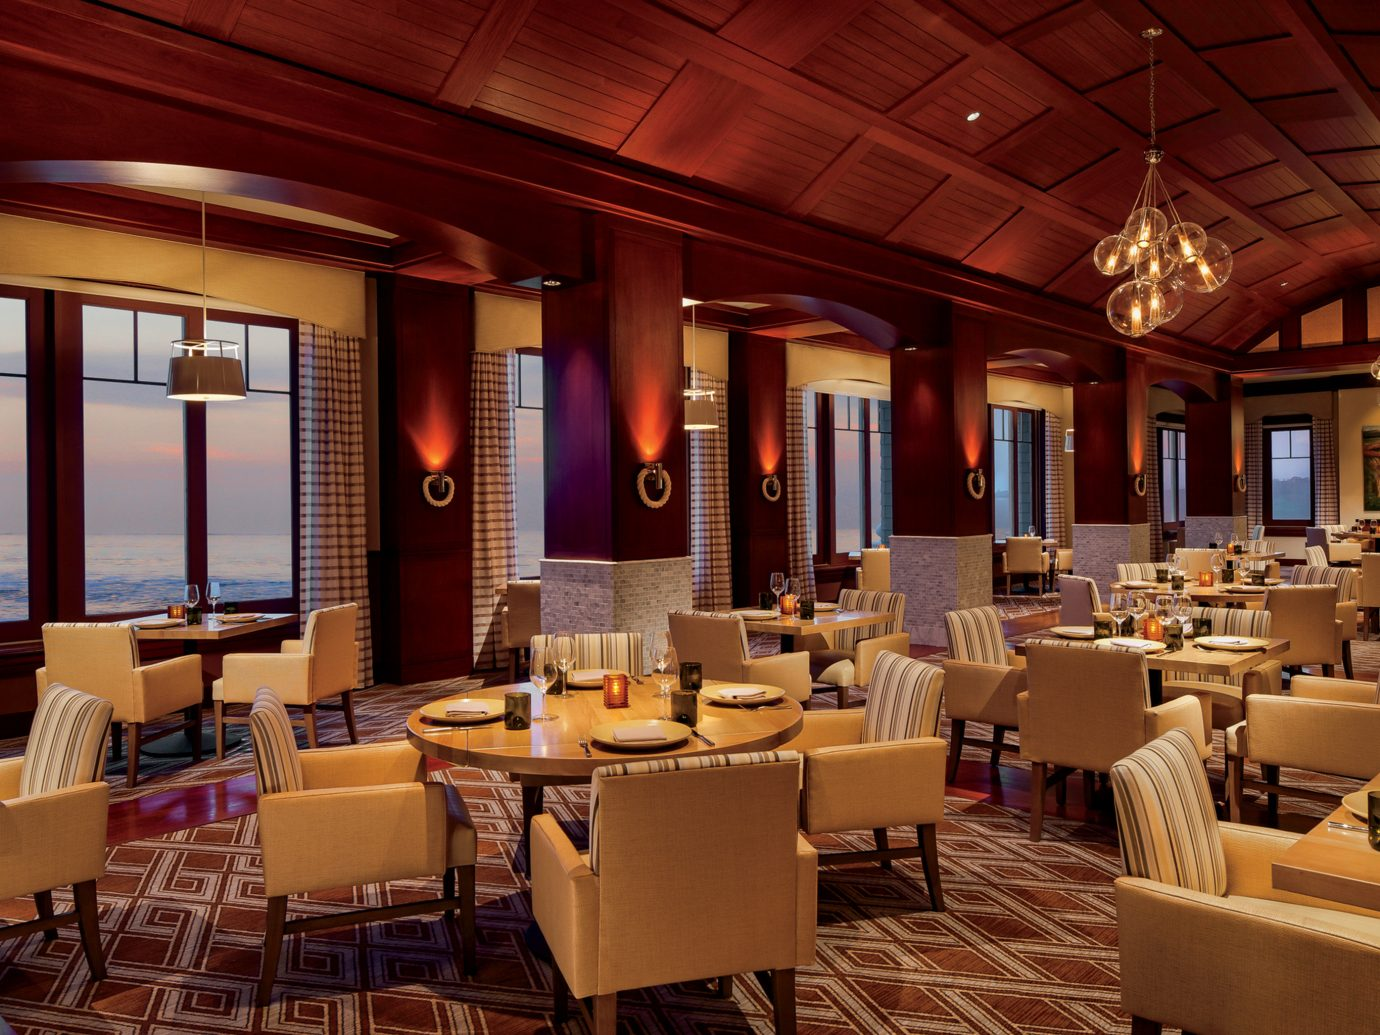 Bar Dining Drink Eat Hotels Scenic views table indoor ceiling chair window room restaurant Lobby function hall estate interior design café meal convention center furniture several